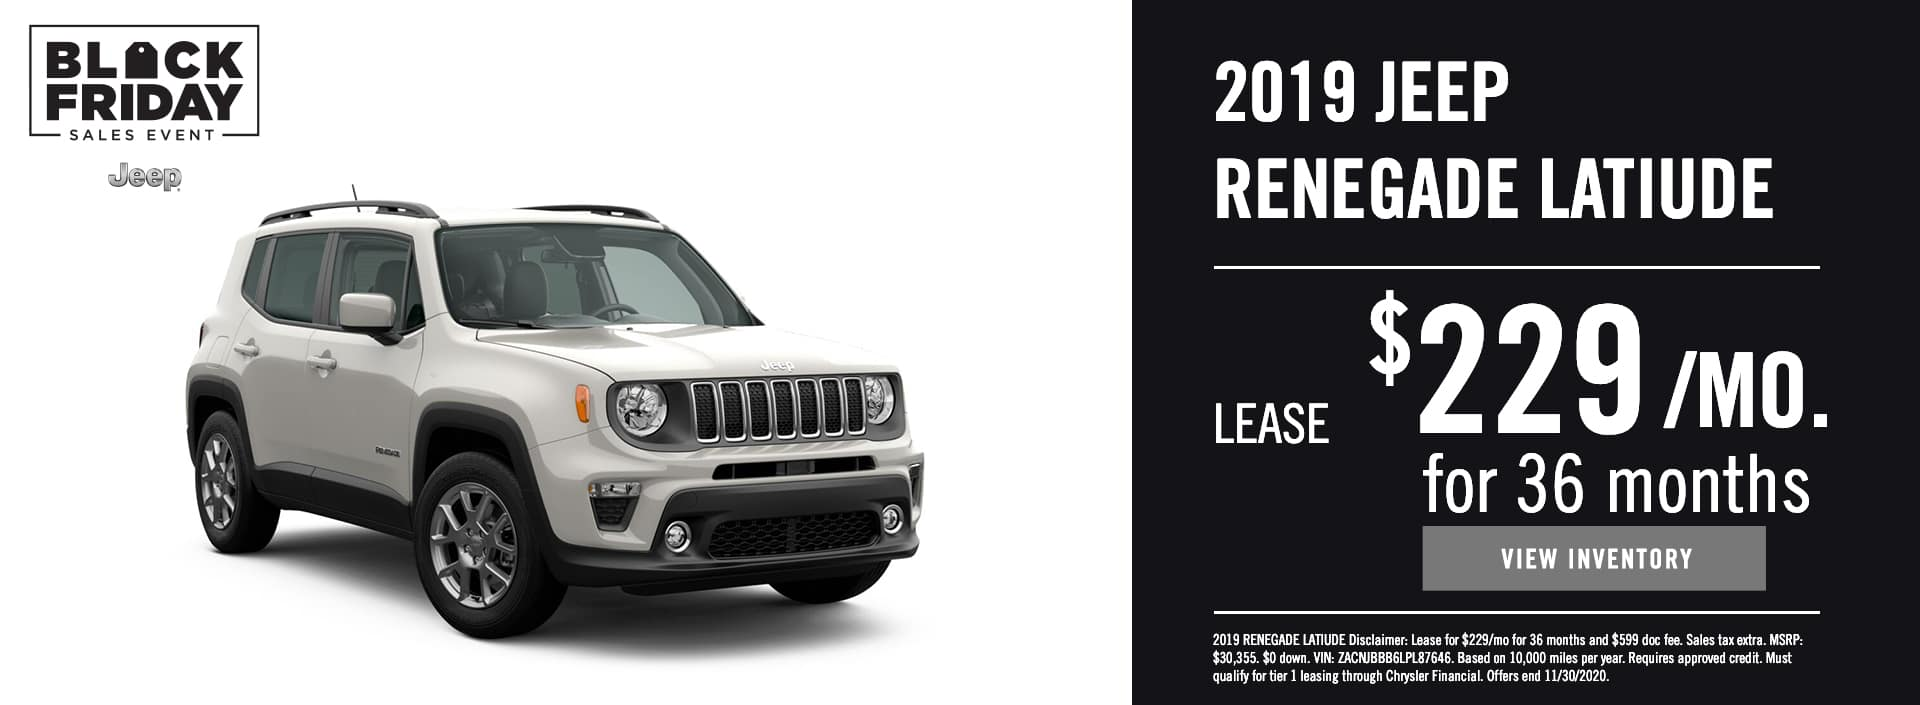 2019 renegade latiude (1)